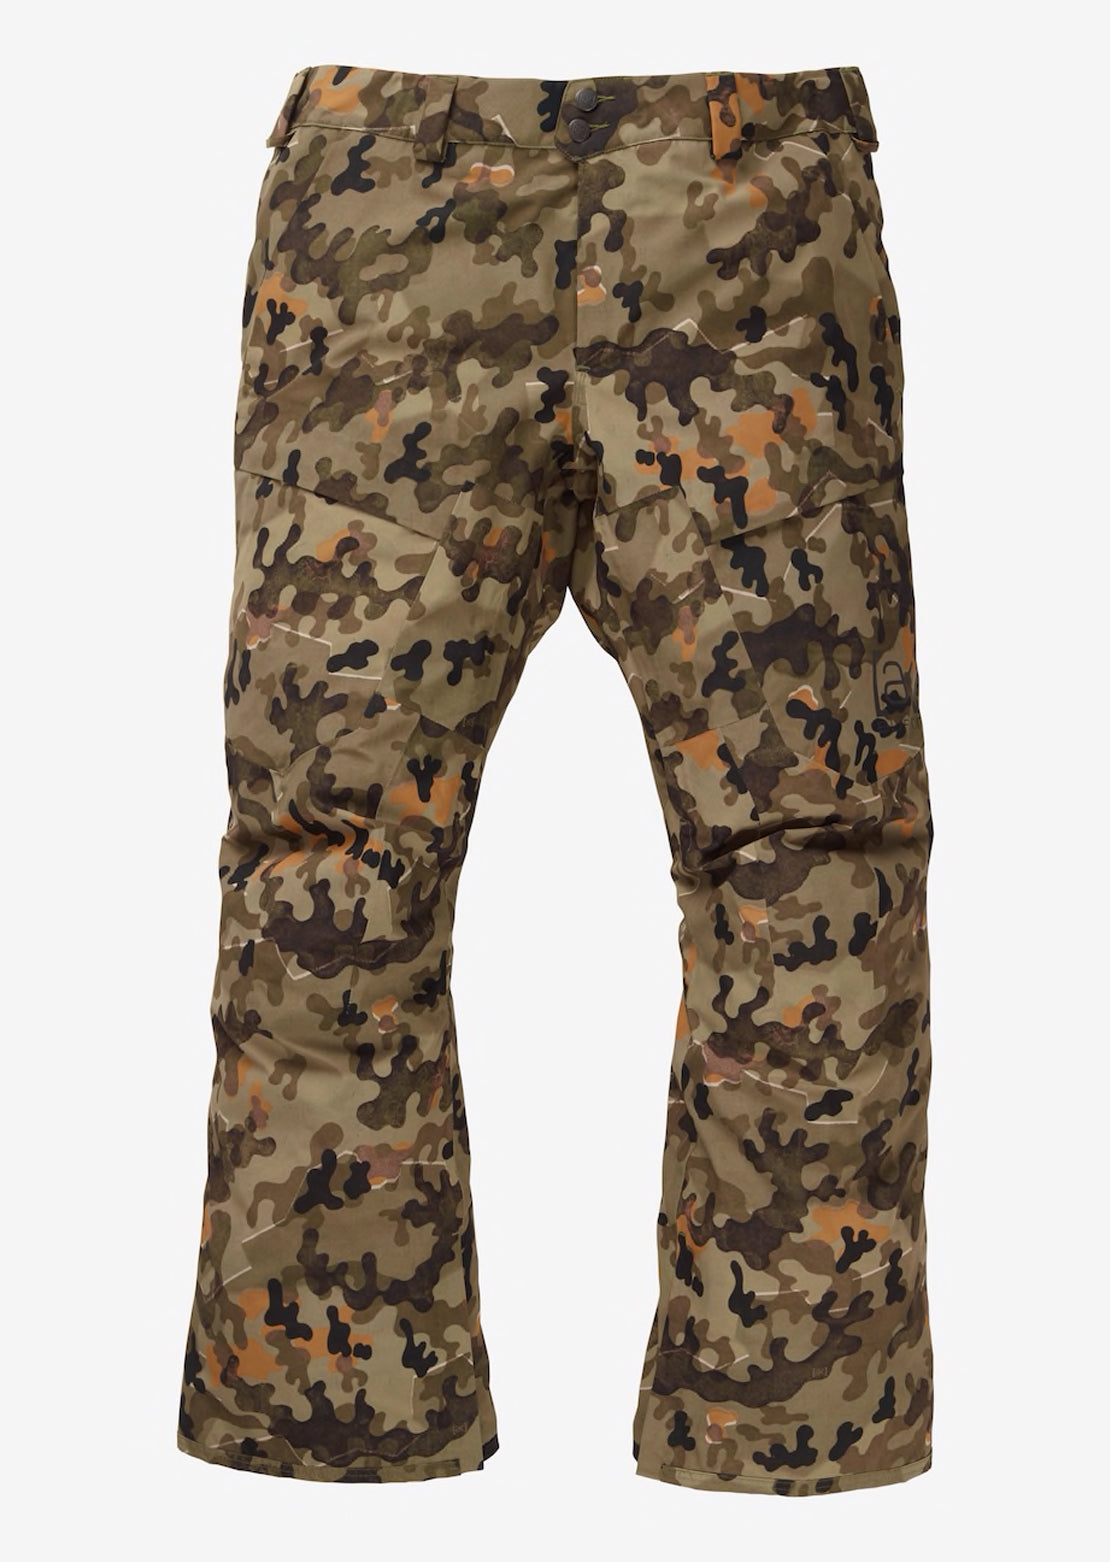 Burton AK Men's Gore-Tex Swash Pants Keef Shelter Camo